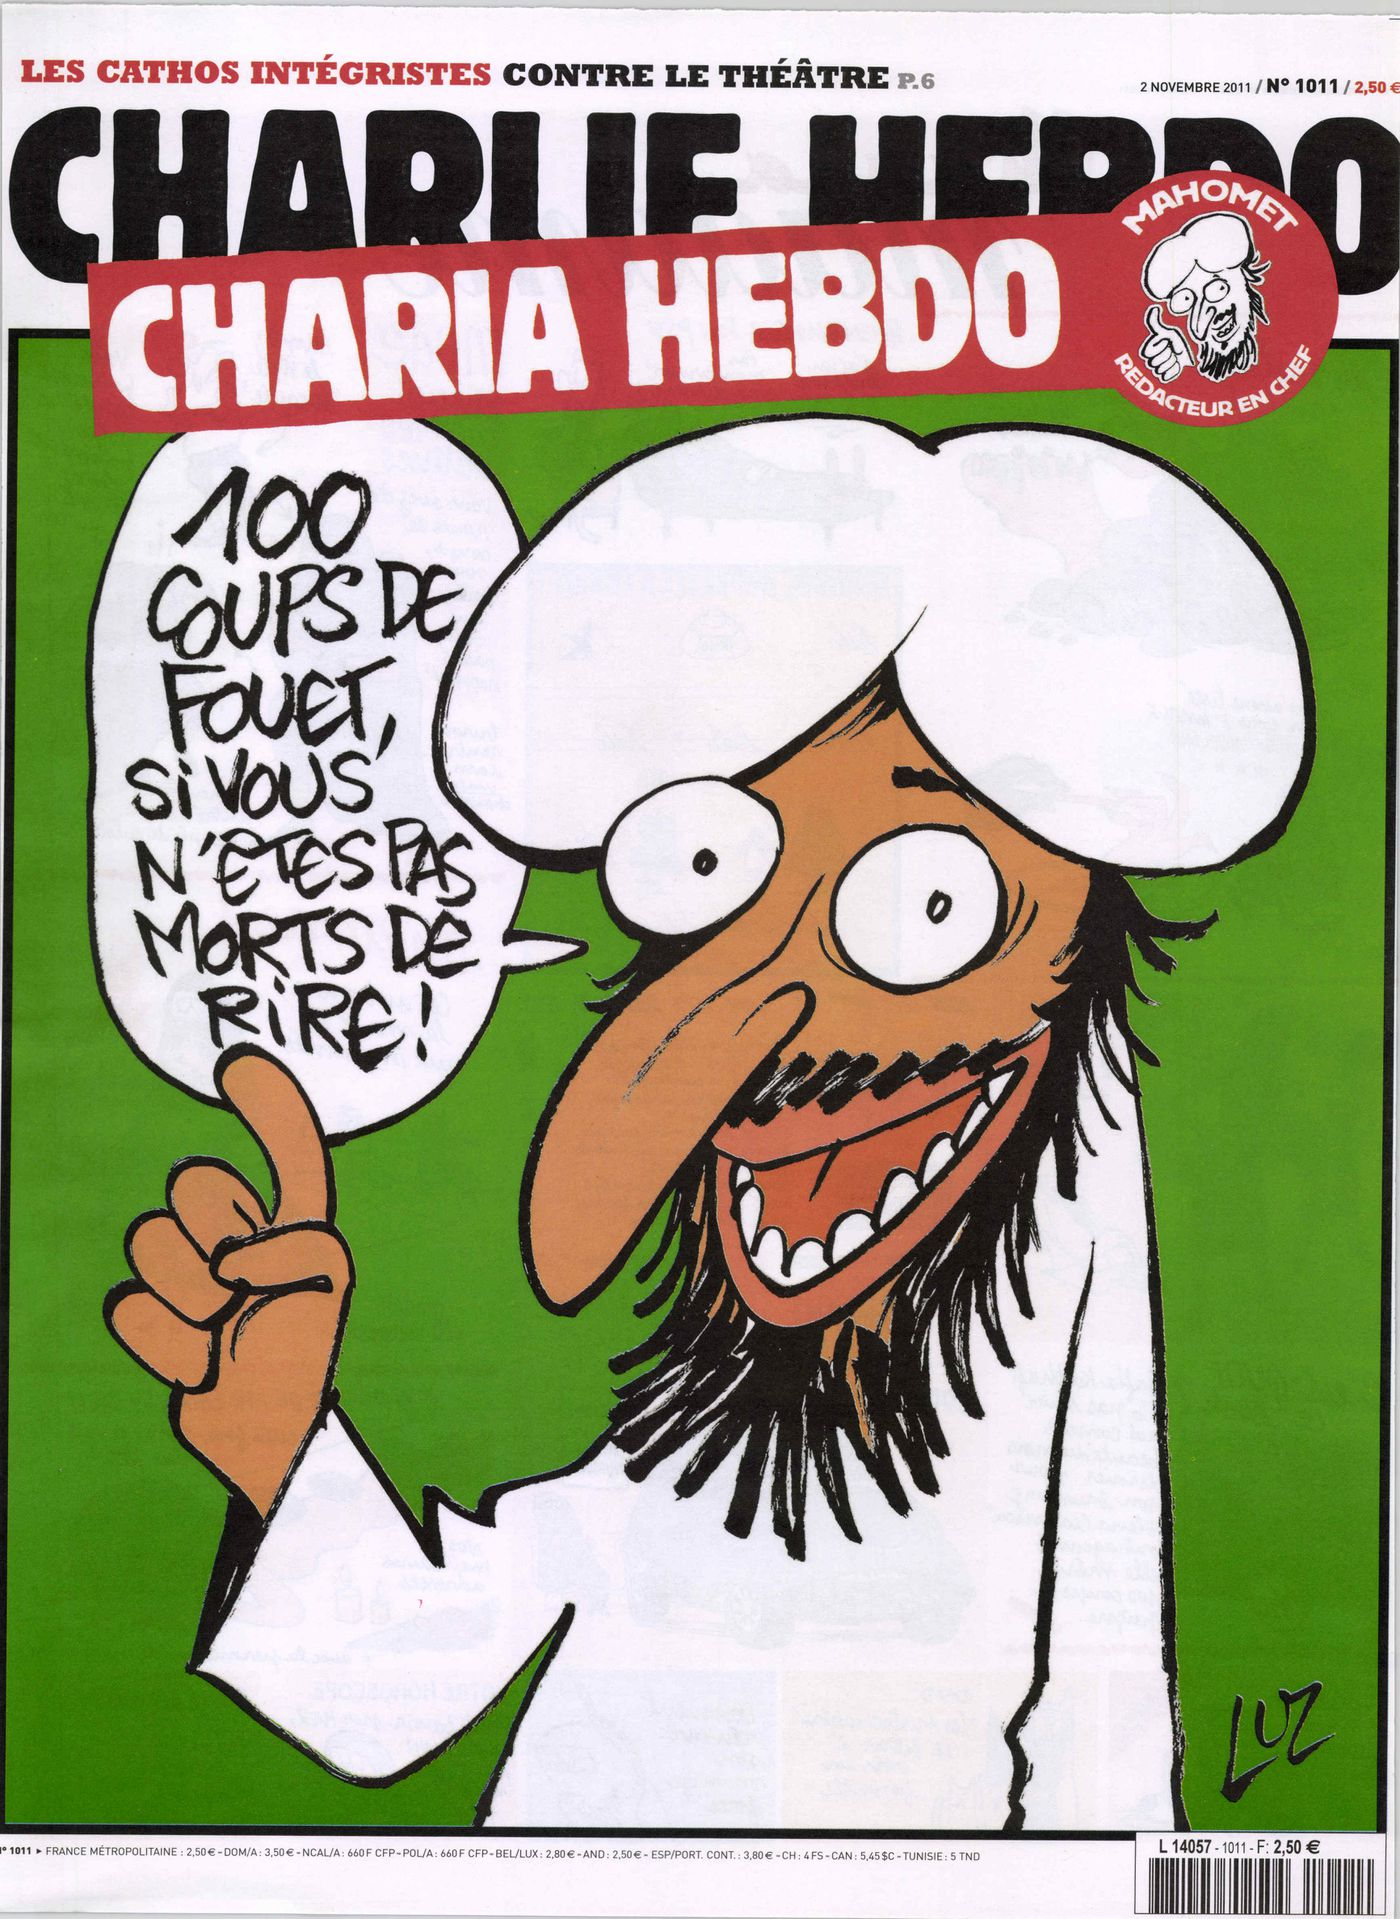 The Charlie Hebdo Attack Explained Vox